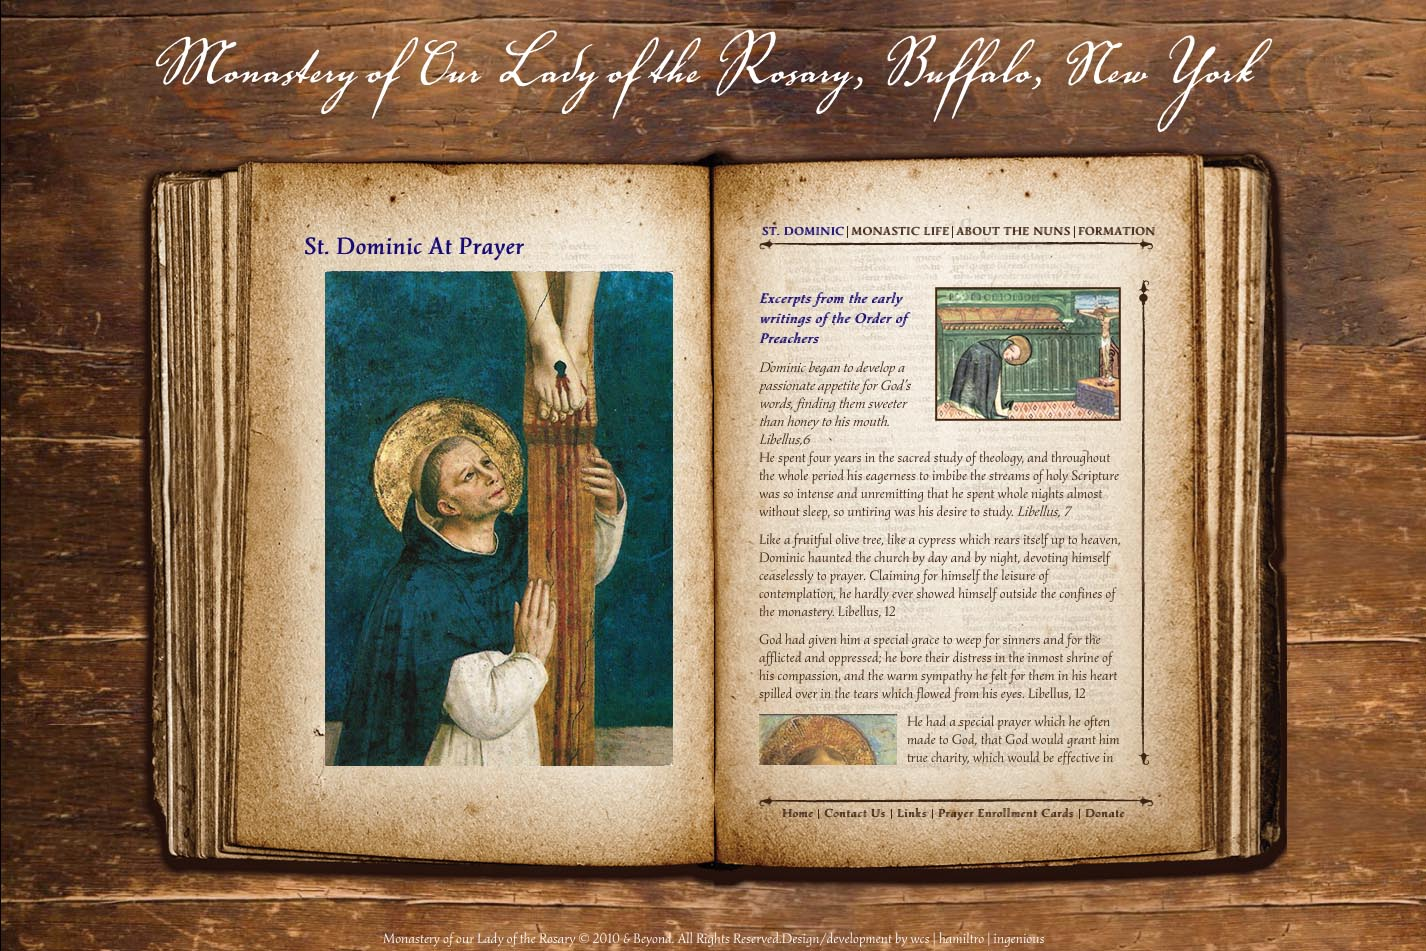 web design for a monastery - page about Saint Dominic